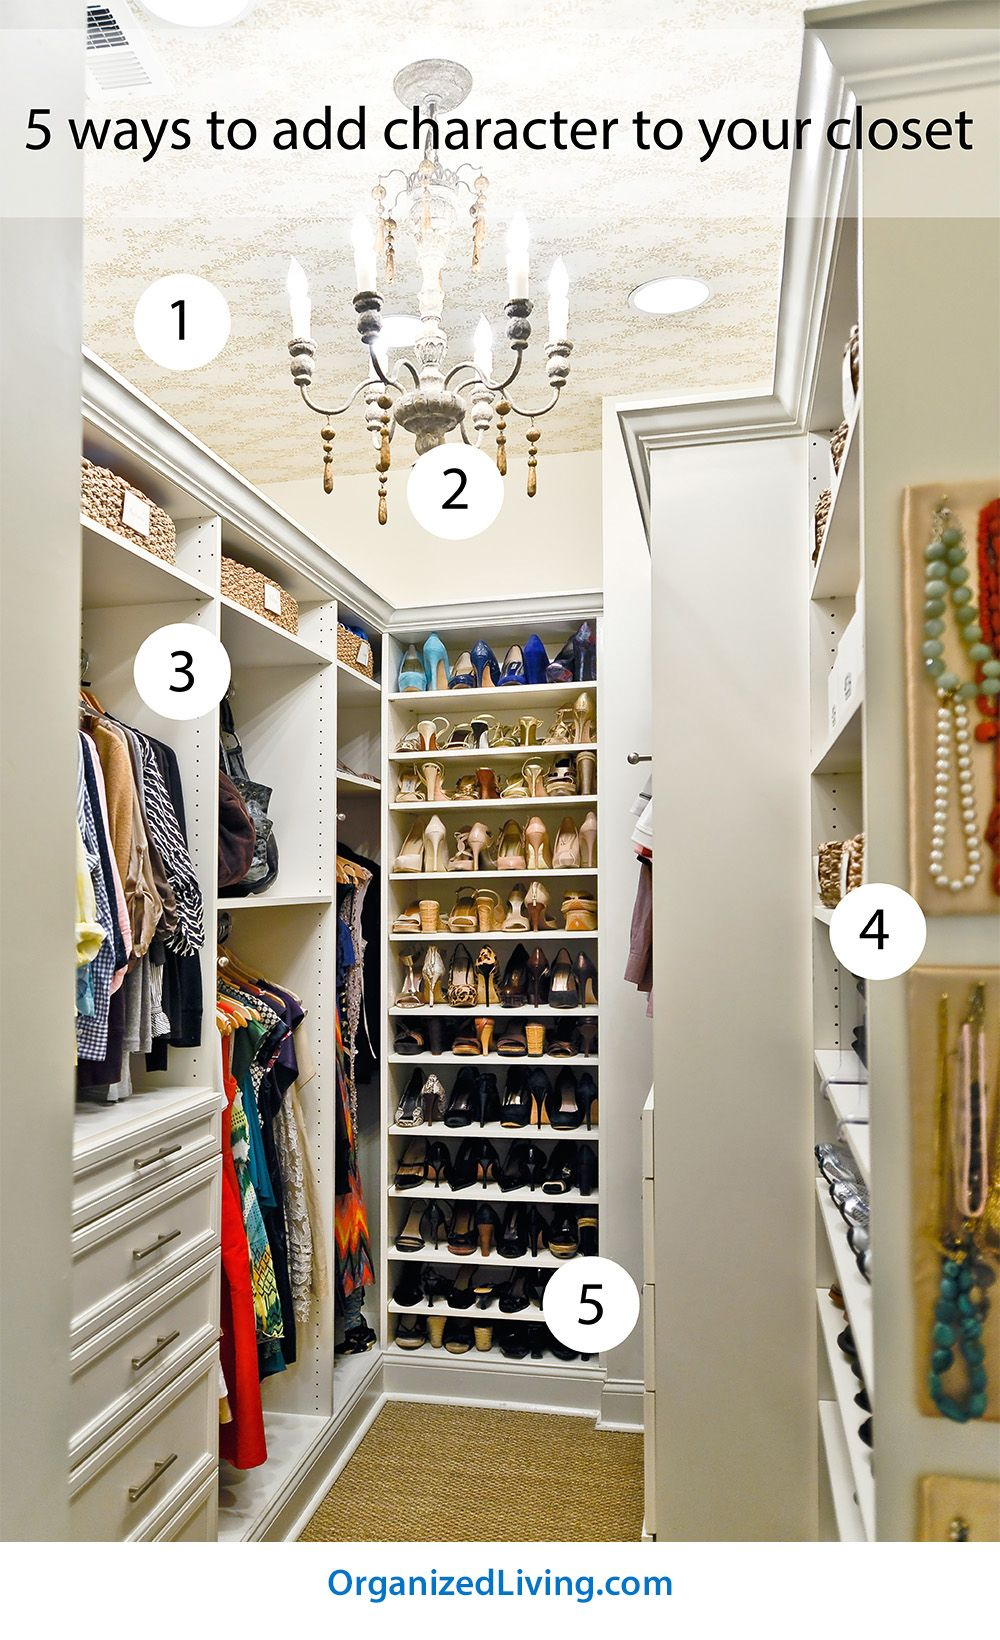 5 Ways To Add Character To A Closet | Organized Living